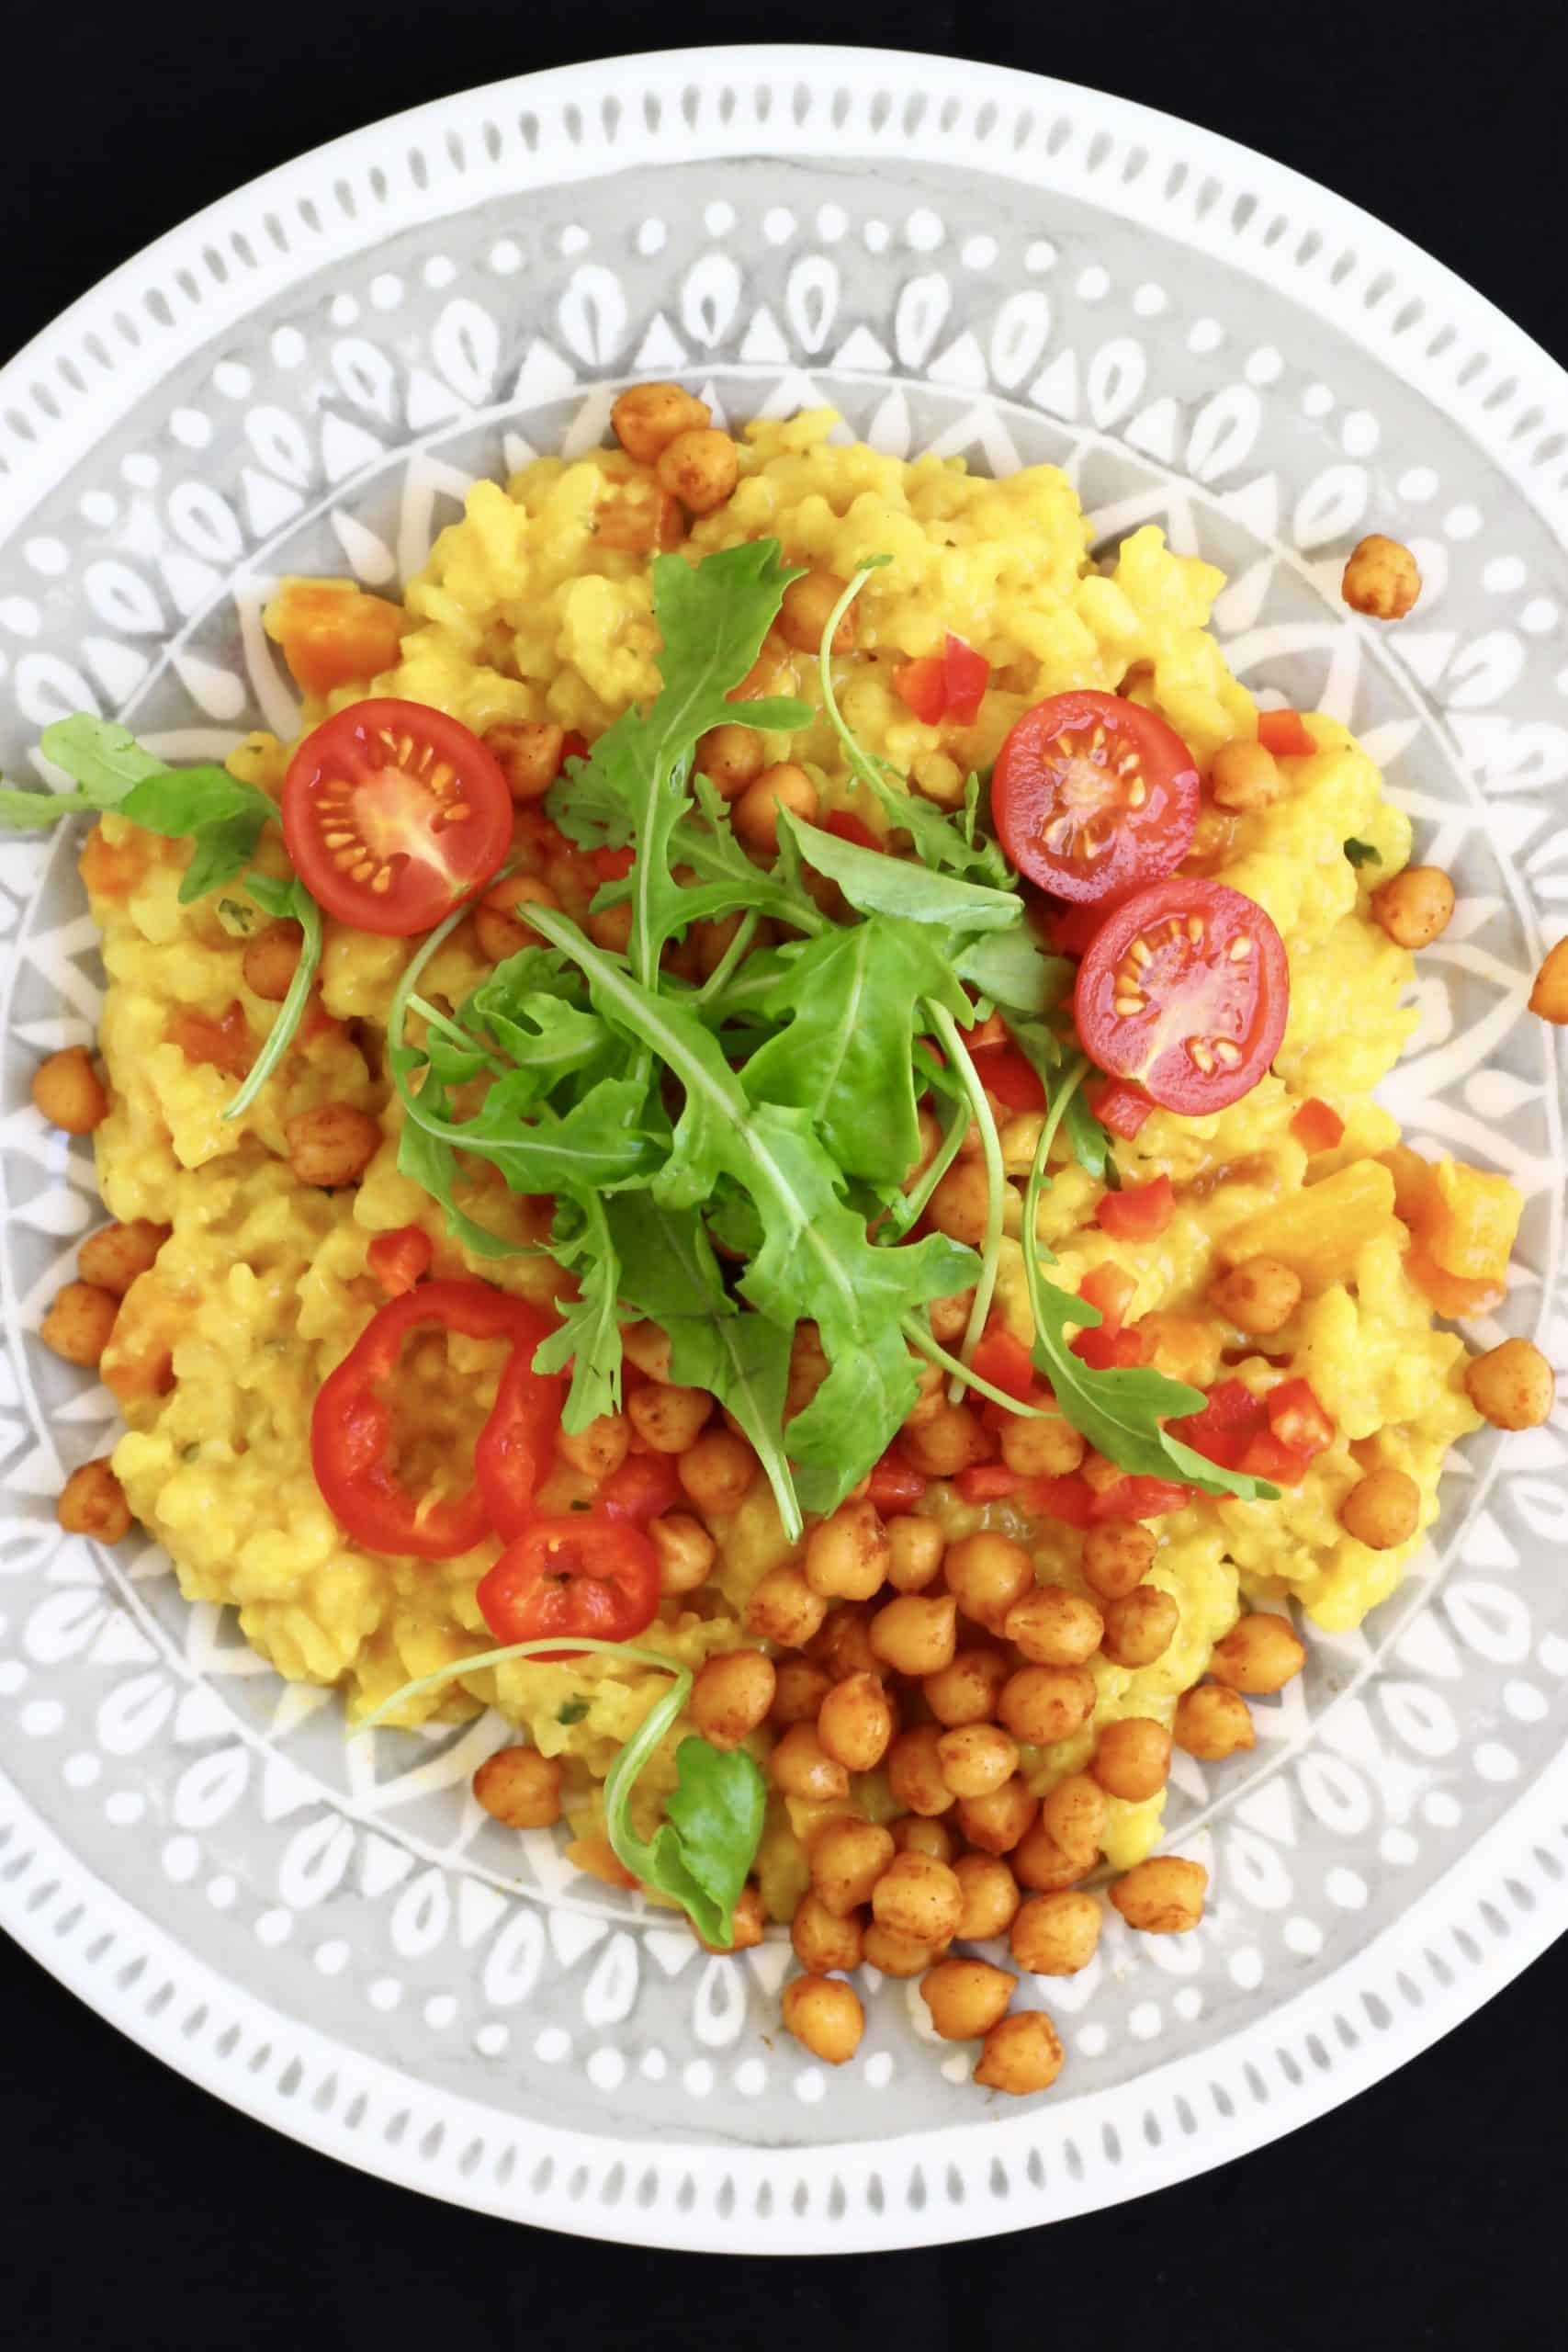 Spanish risotto with crispy chickpeas on a grey plate